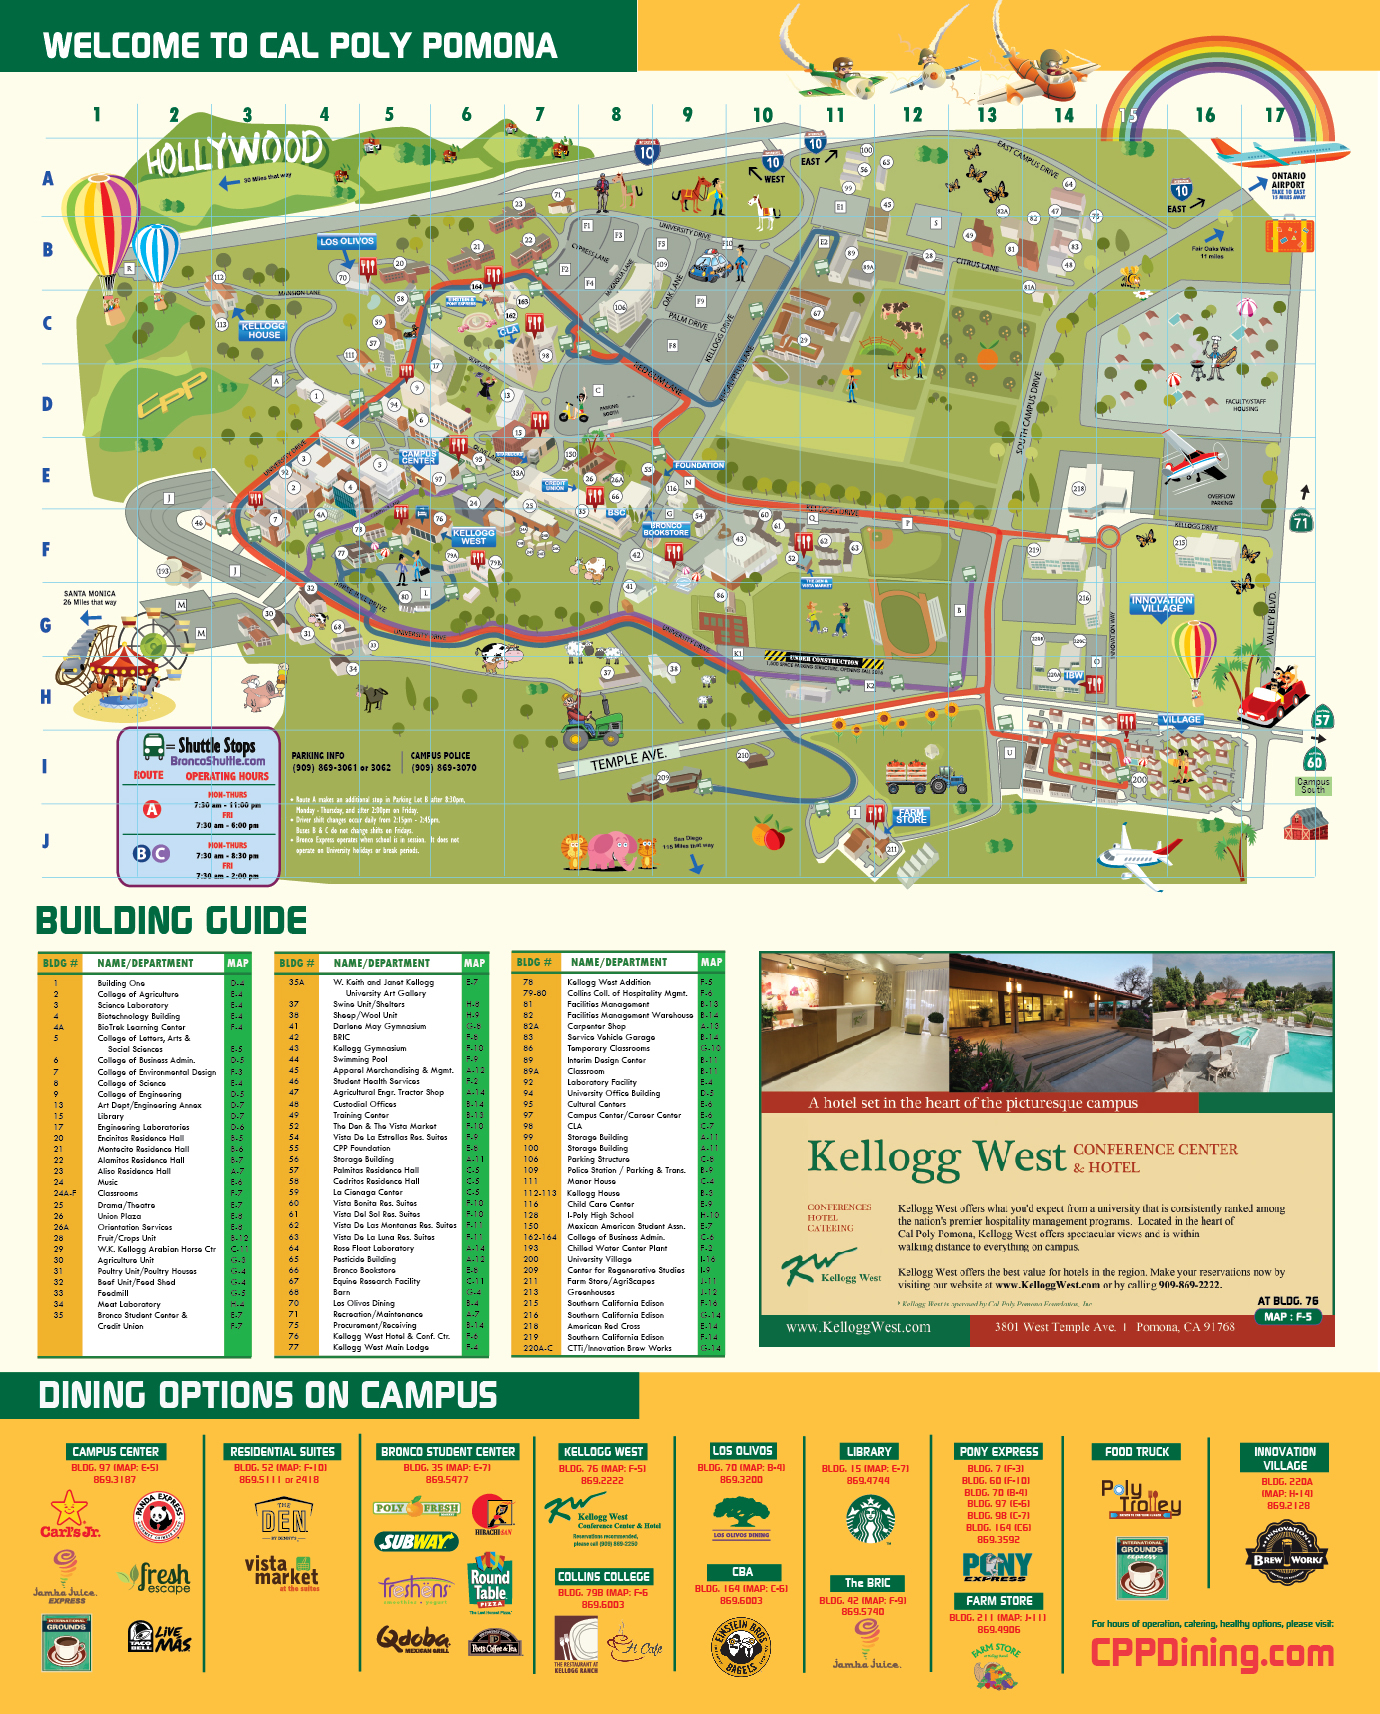 Cpp Campus Map Cal Poly Pomona Foundation, Inc.   Foundation Directions